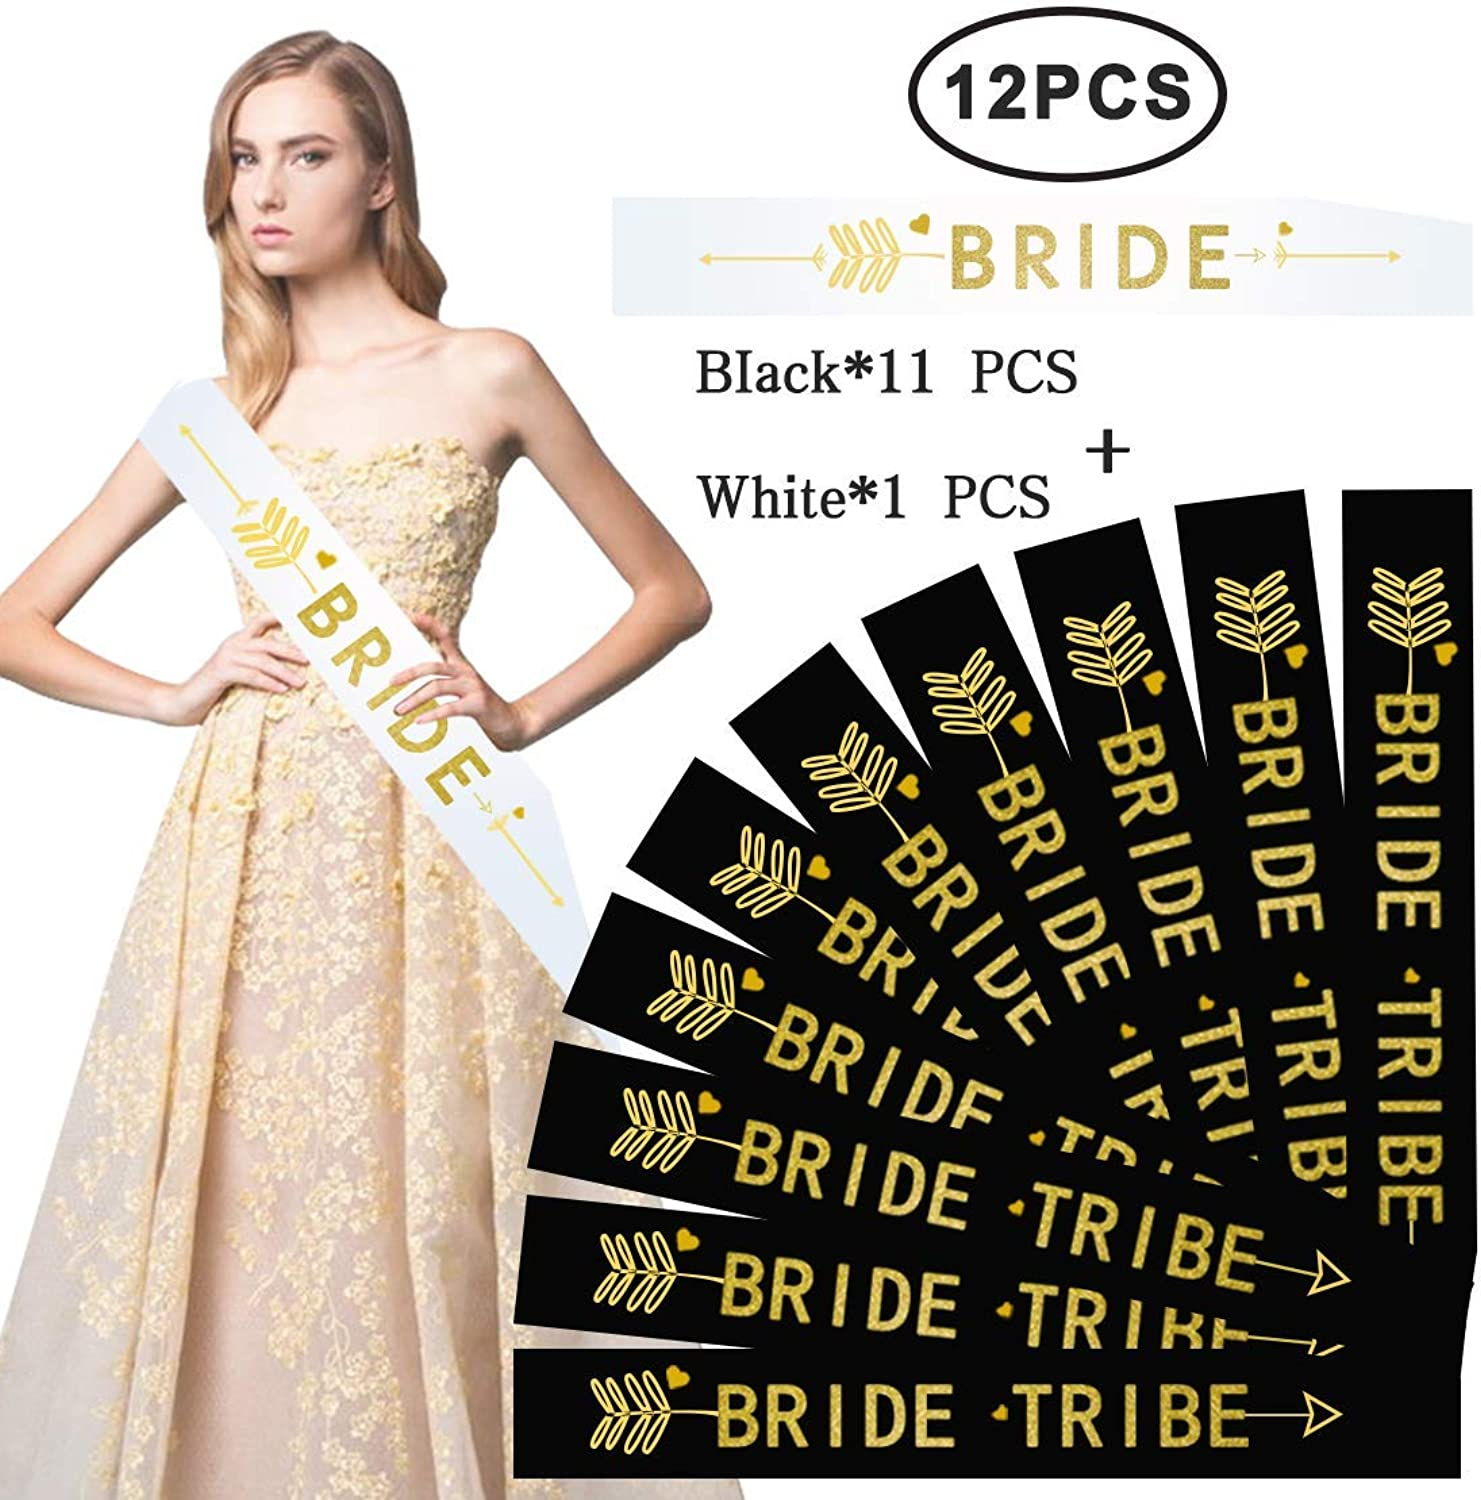 (12 Pack, Black and White)  12 Pack Bride Tribe Sashes Set 11 Black with 1 White Hen Party Sashes Decoration Team Bride and Girls Ladies Night Out (Black and White)